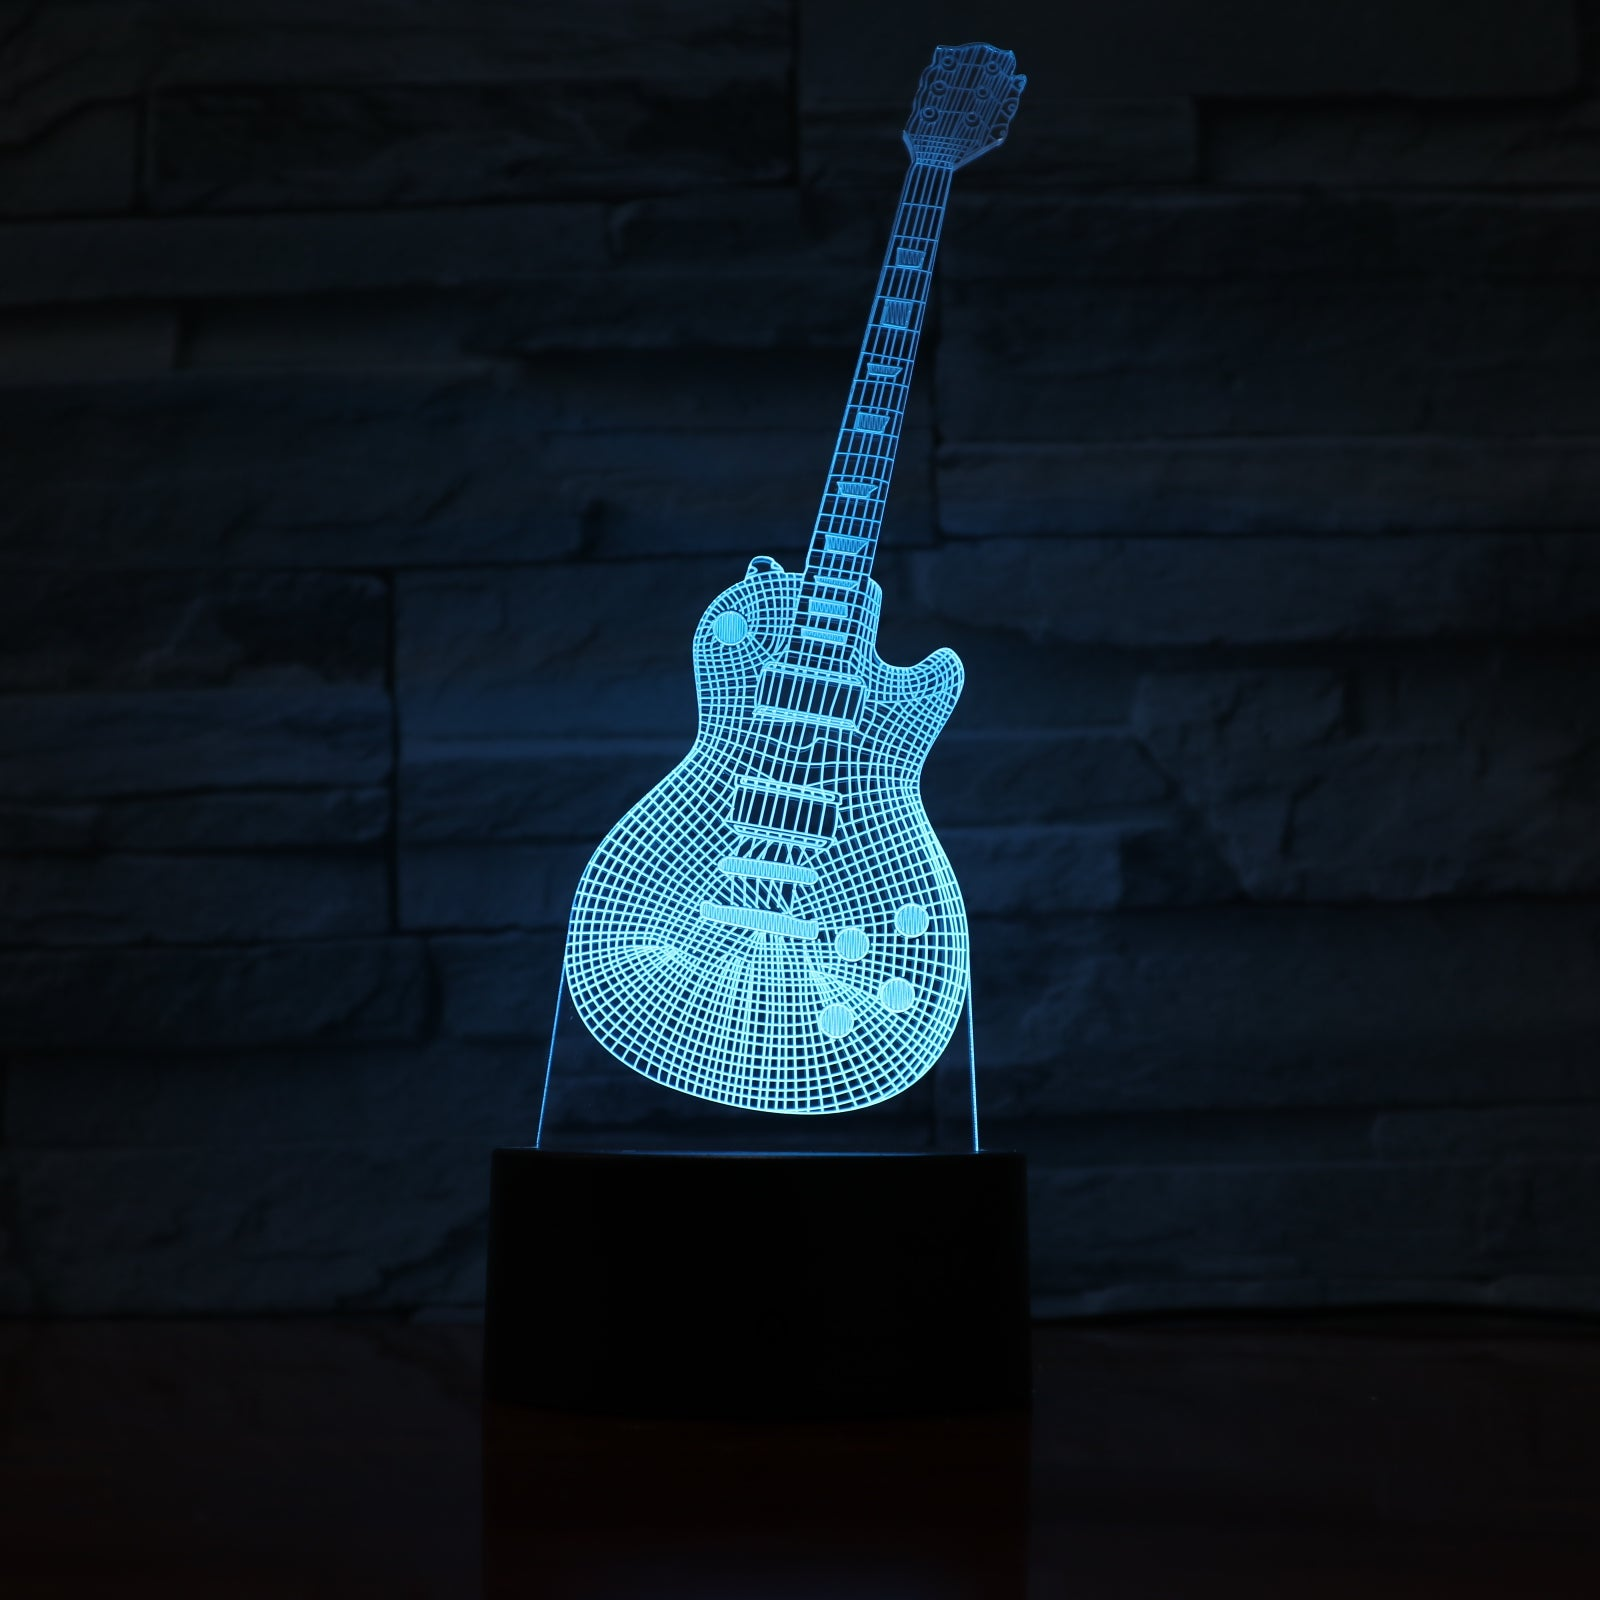 Guitar 3 - 3D Optical Illusion LED Lamp Hologram